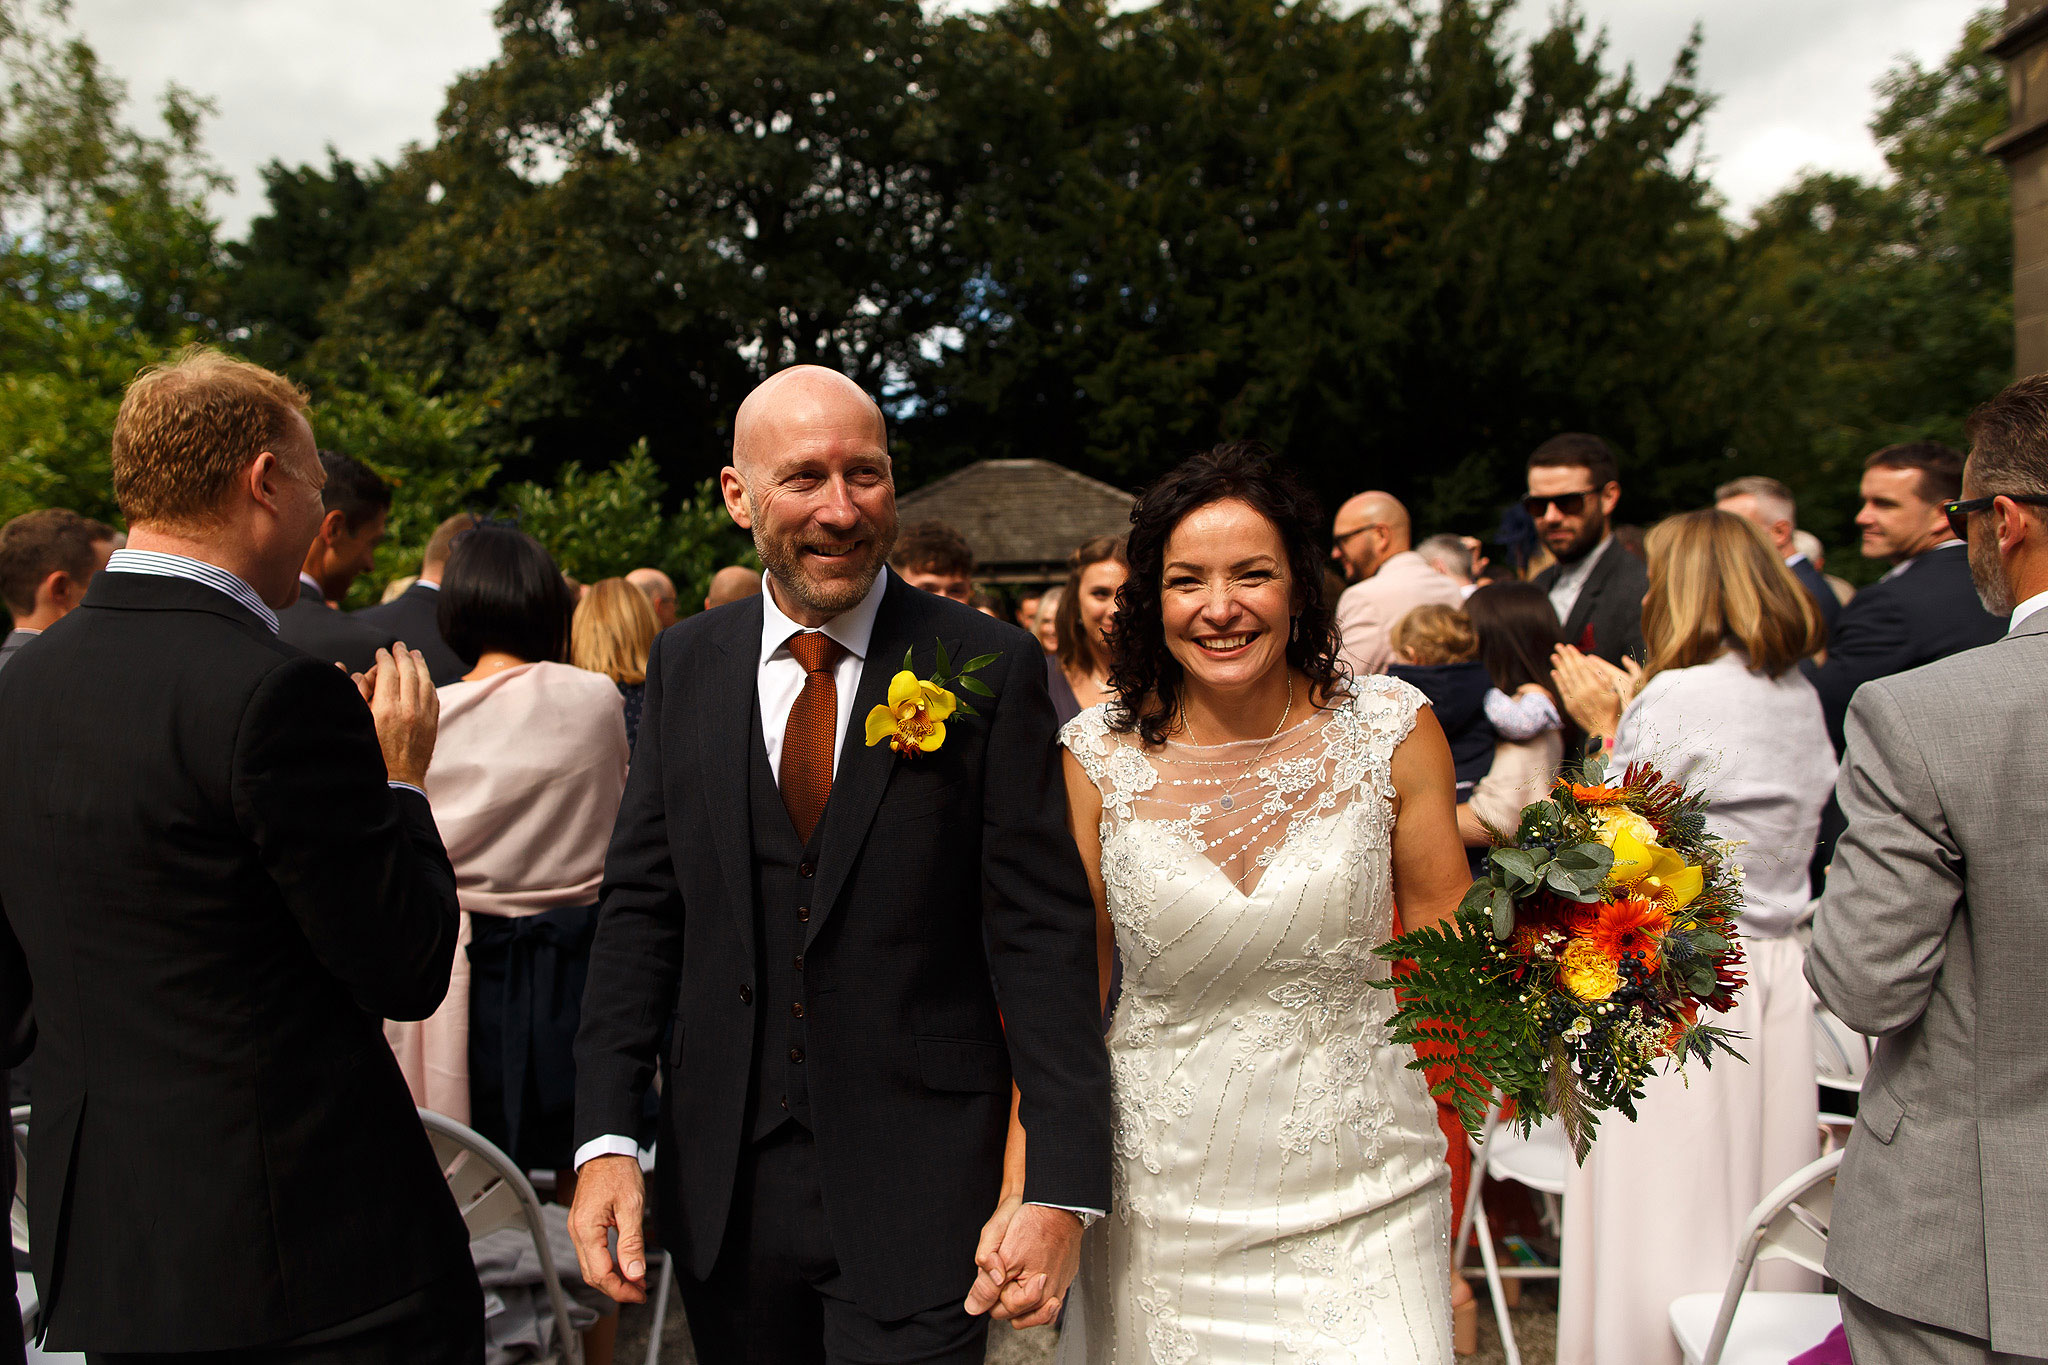 Bride and groom walking down the aisle | Hargate Hall Wedding Photography